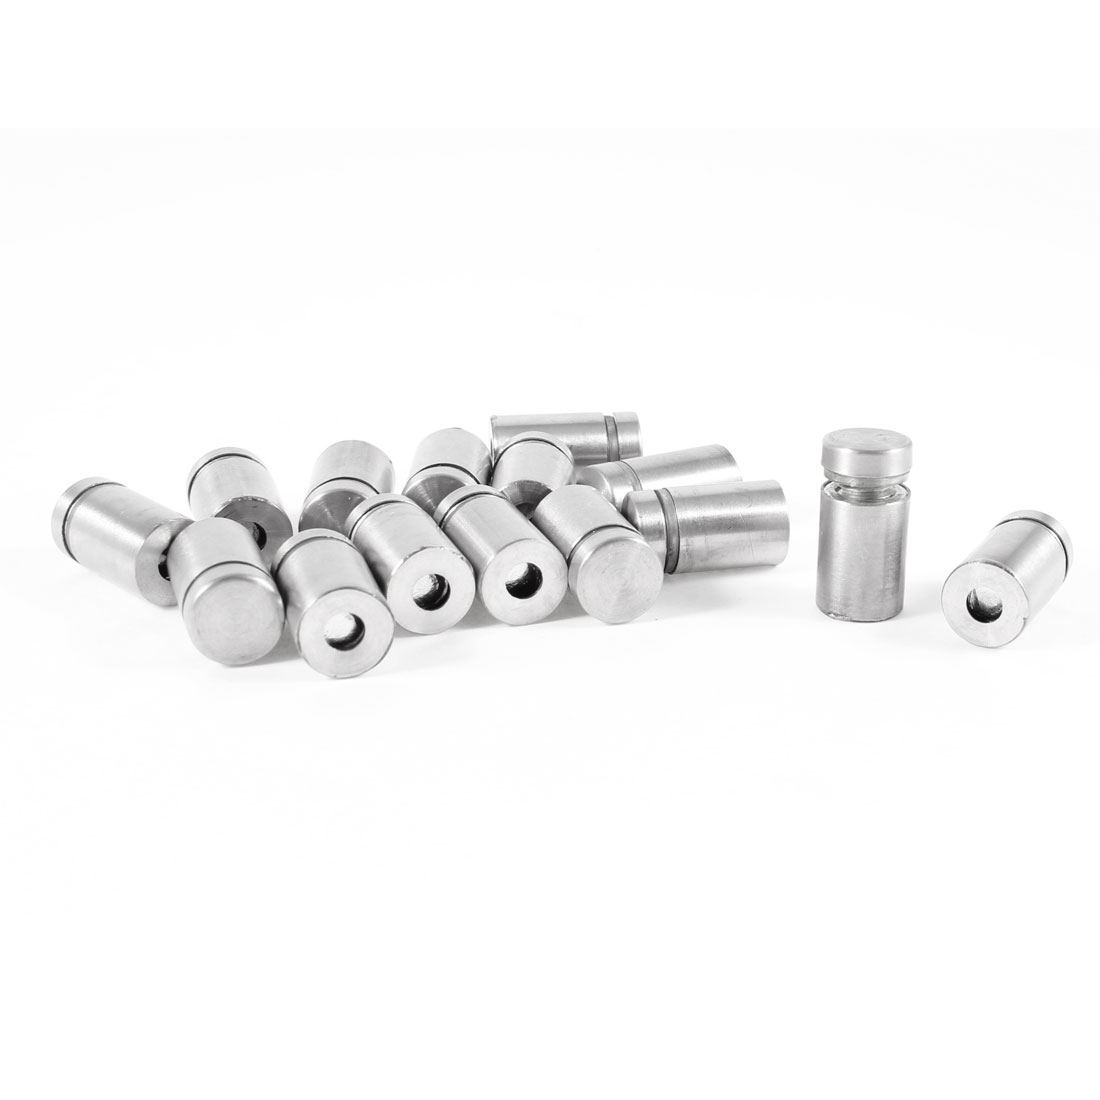 15 Pcs 12mm Dia 22mm Length Stainless Steel Advertising Nail Glass Standoff Pin